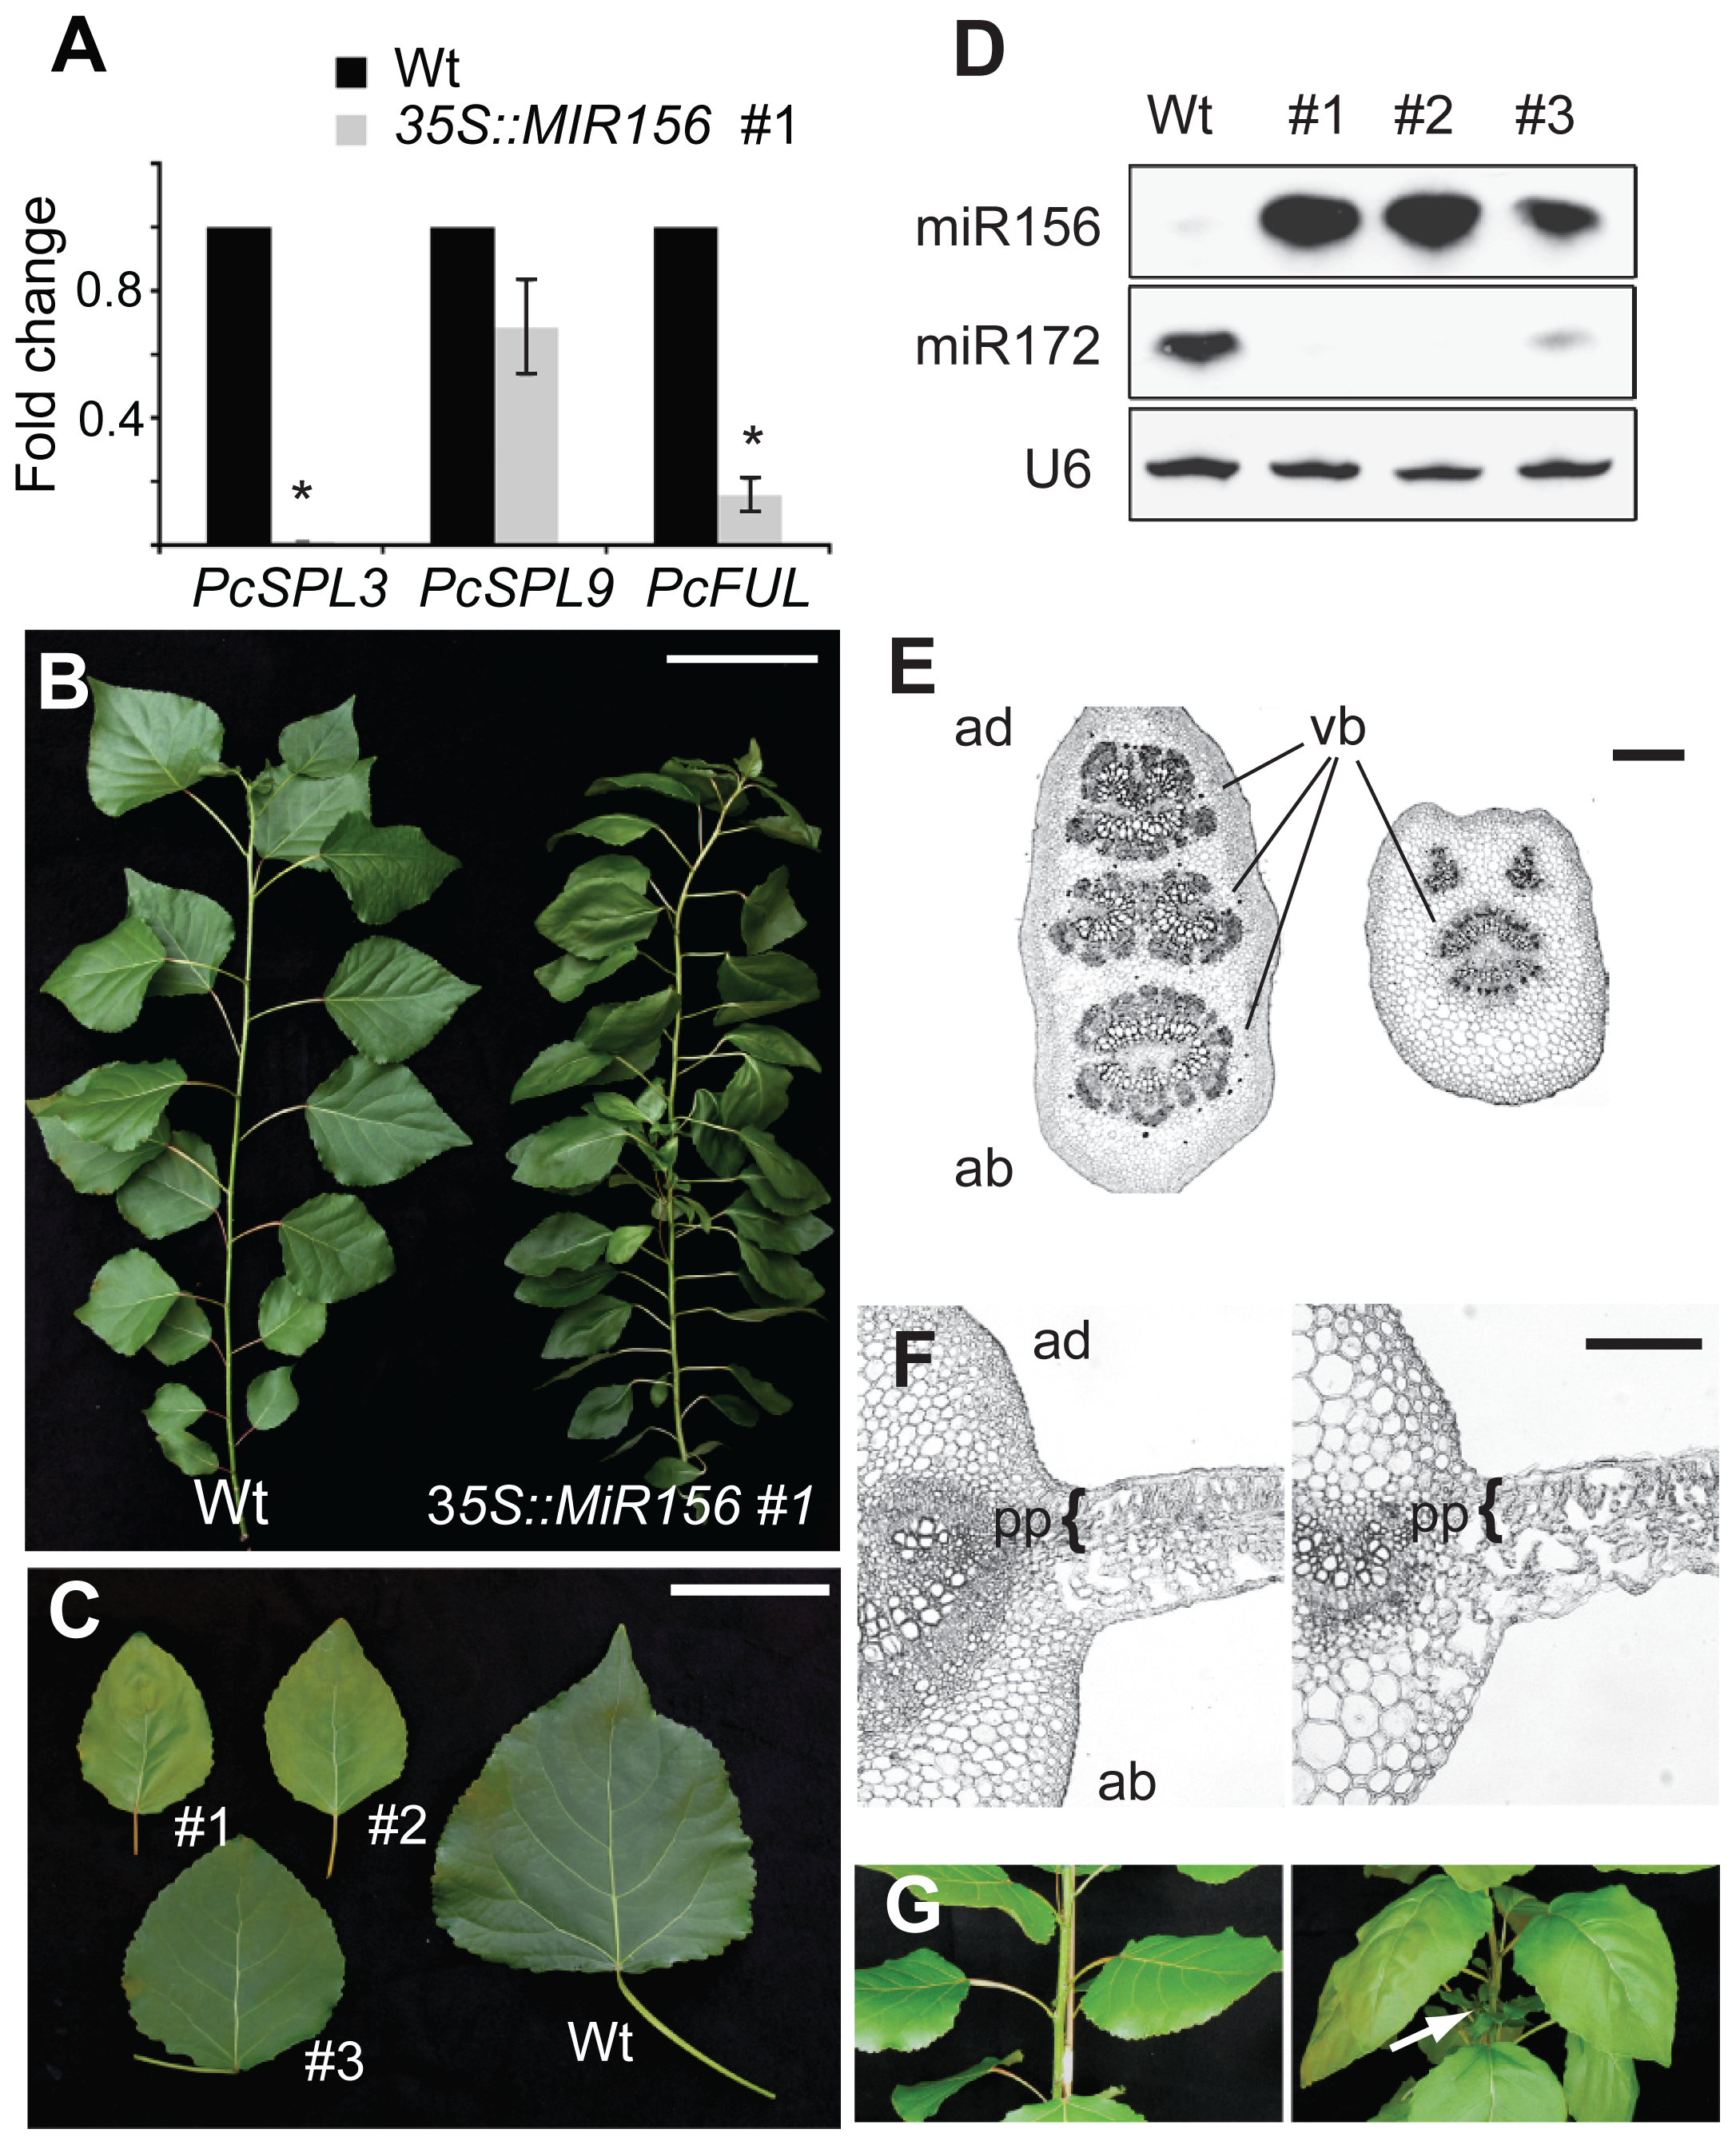 The phenotype of <i>35S::MIR156 P. x canadensis</i> plants.